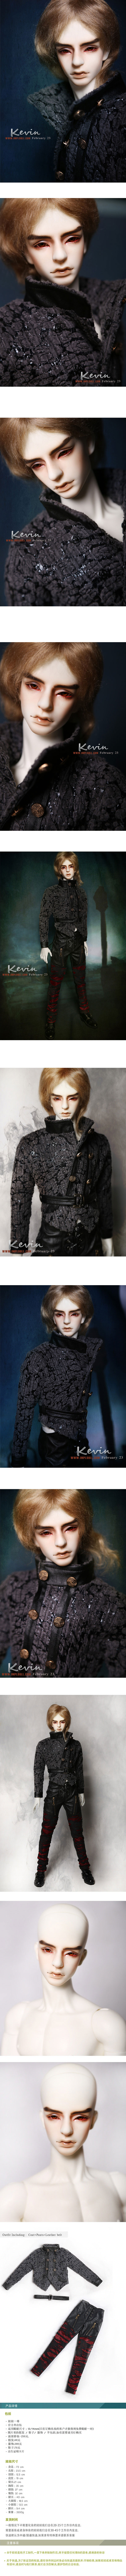 BJD Kevin 72cm Boy Ball-jointed Doll